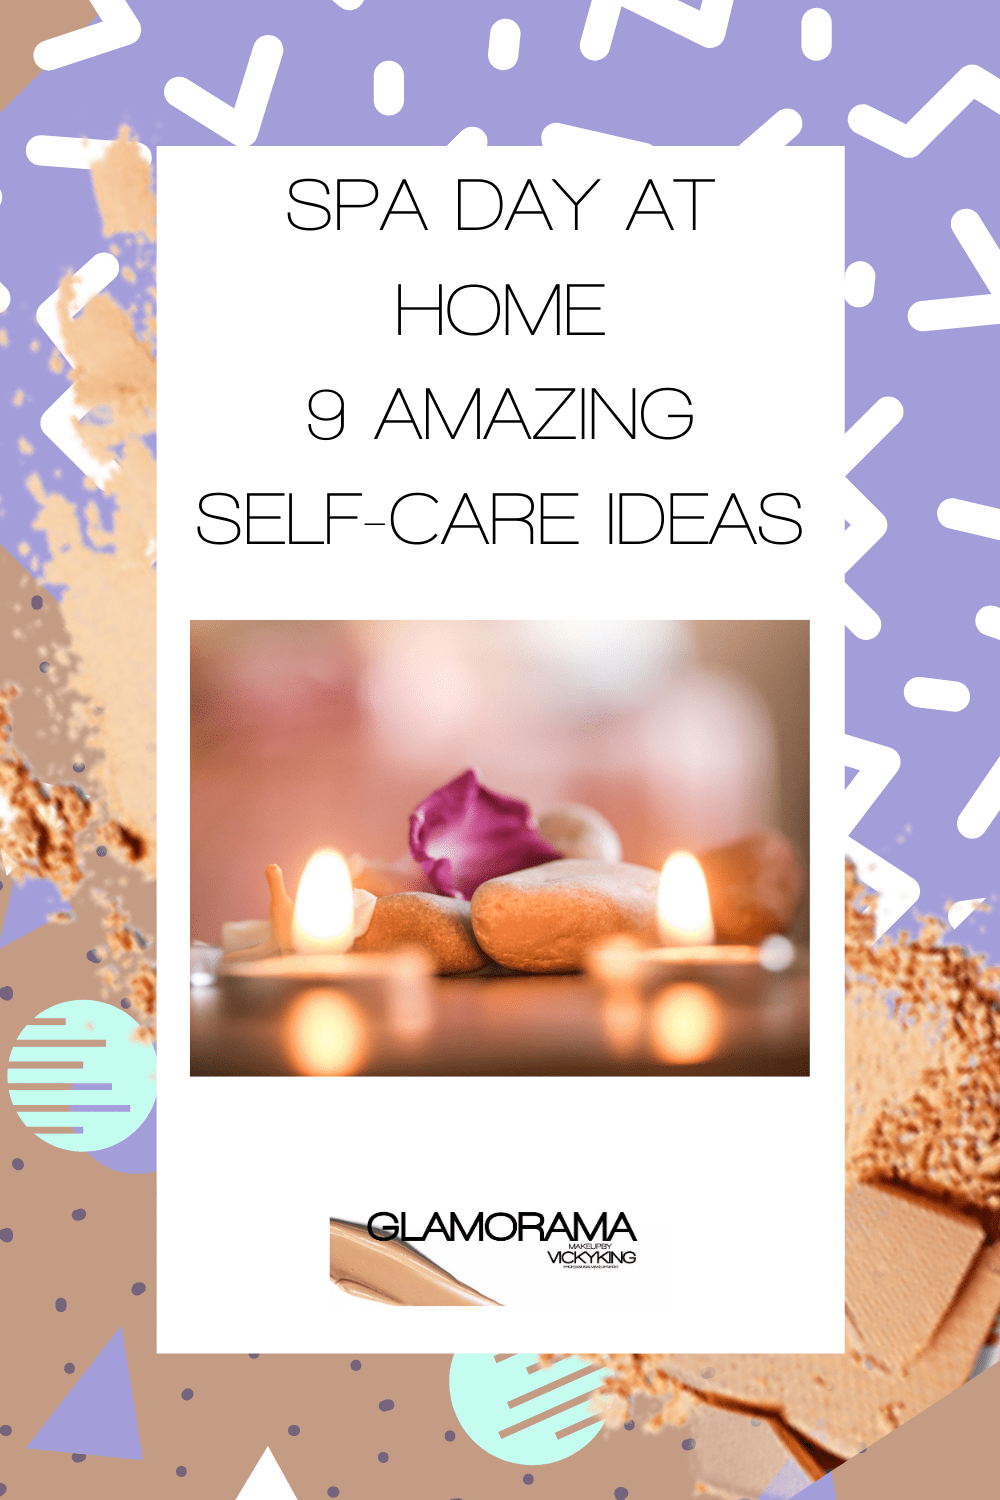 Spa day at home - 9 amazing self-care ideas